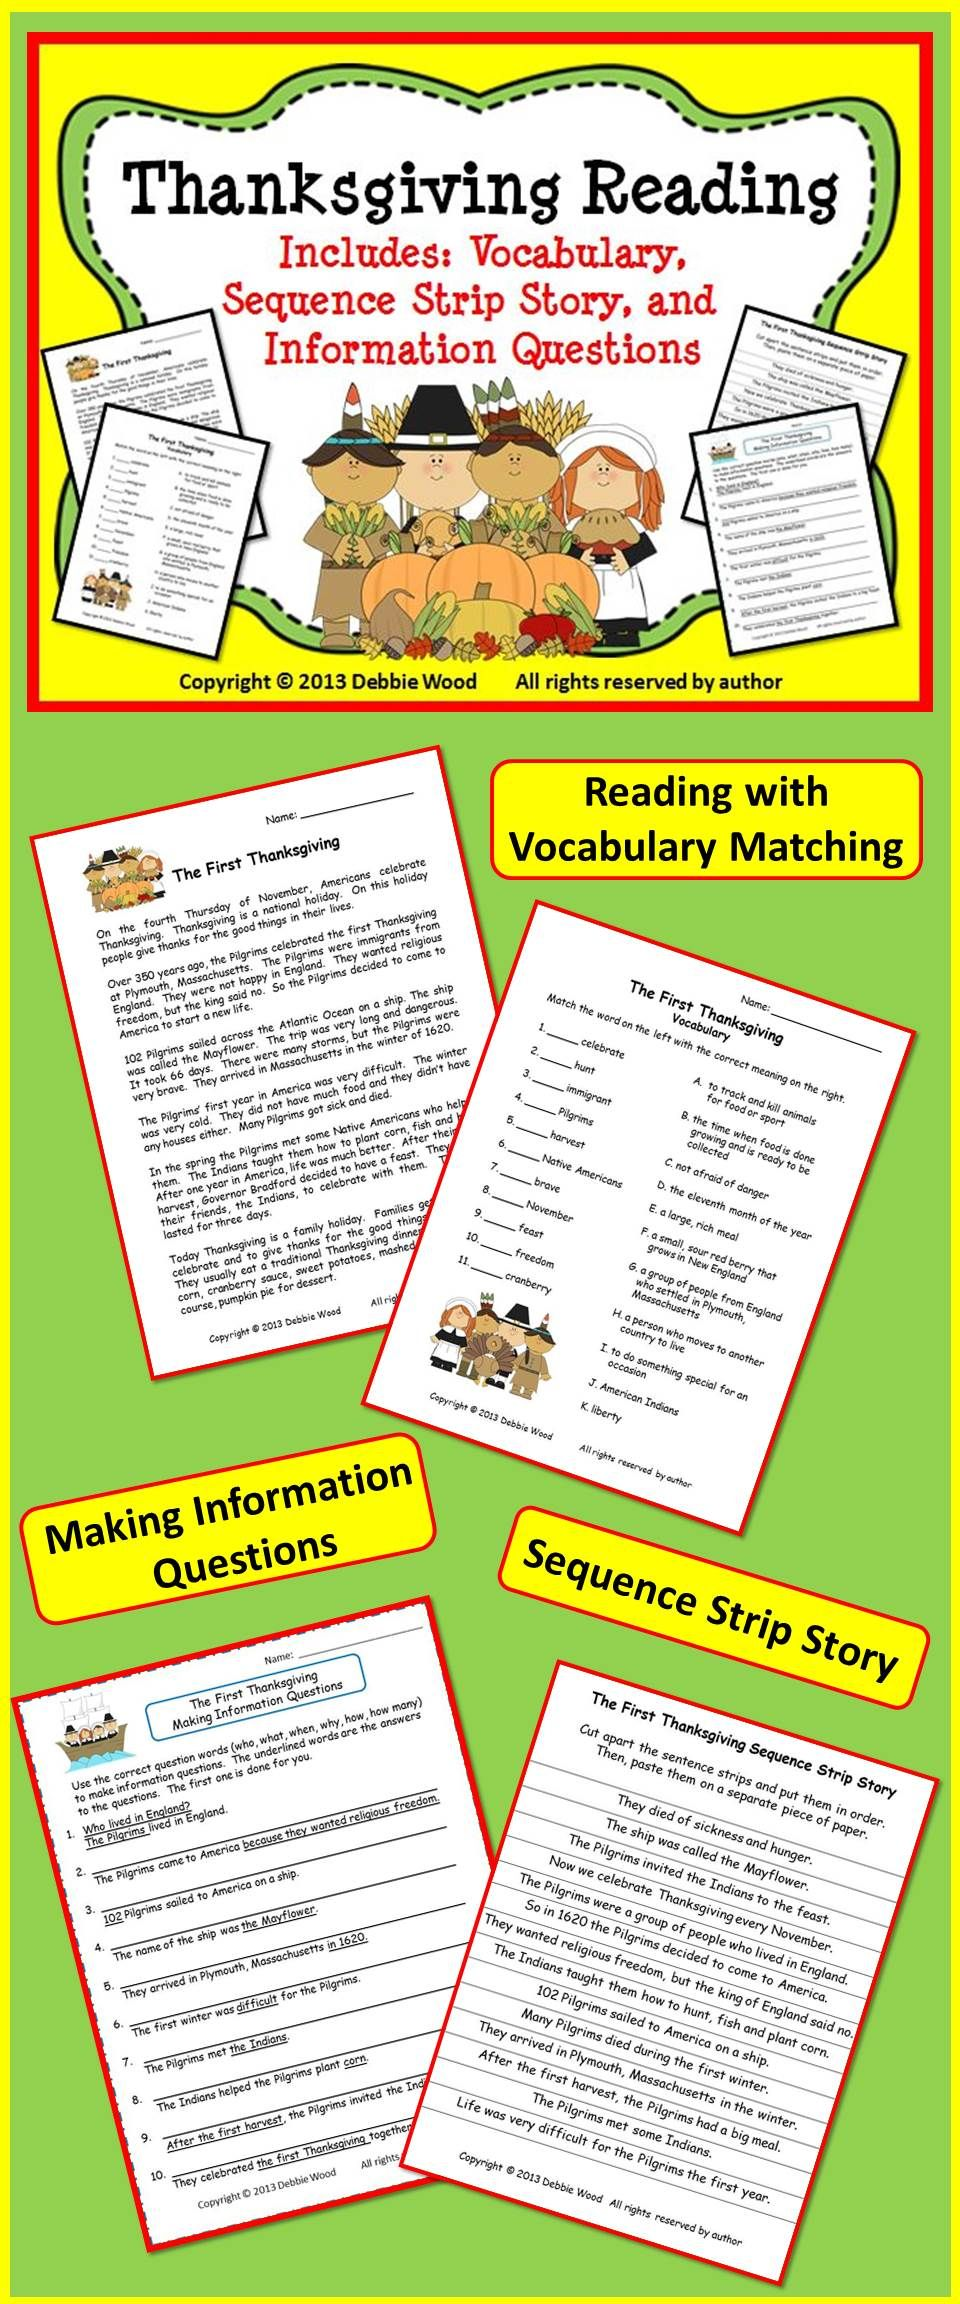 Pin By Debbie Wood On Debbie Wood Tpt Thanksgiving Readings This Or That Questions Reading Tutoring [ 2304 x 960 Pixel ]